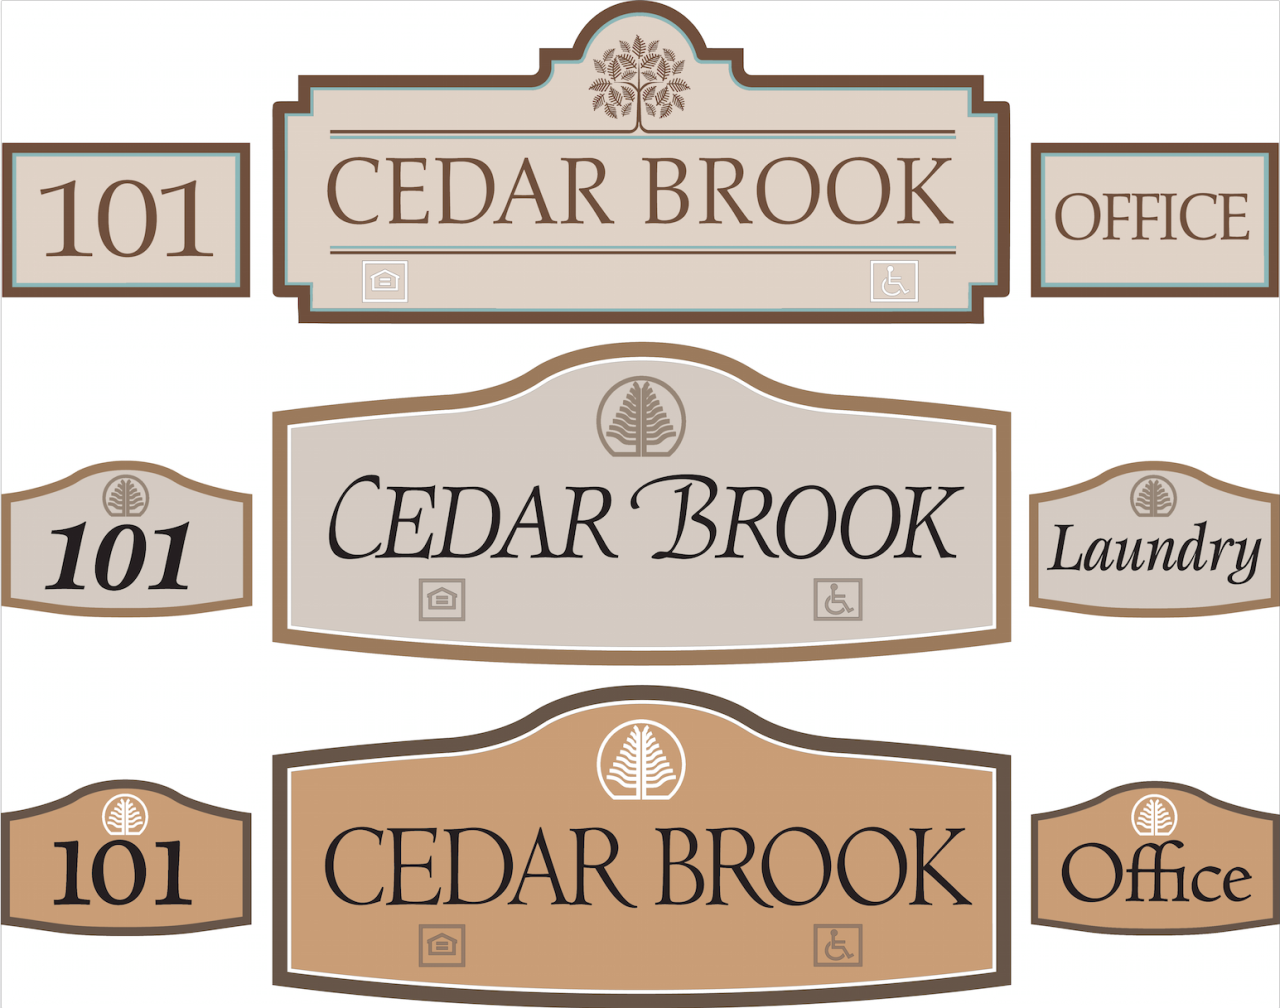 Custom outdoor sign design for Cedar Brook subdivision. Signs were routed in HDU. www.customoutdoorwoodensigns.com